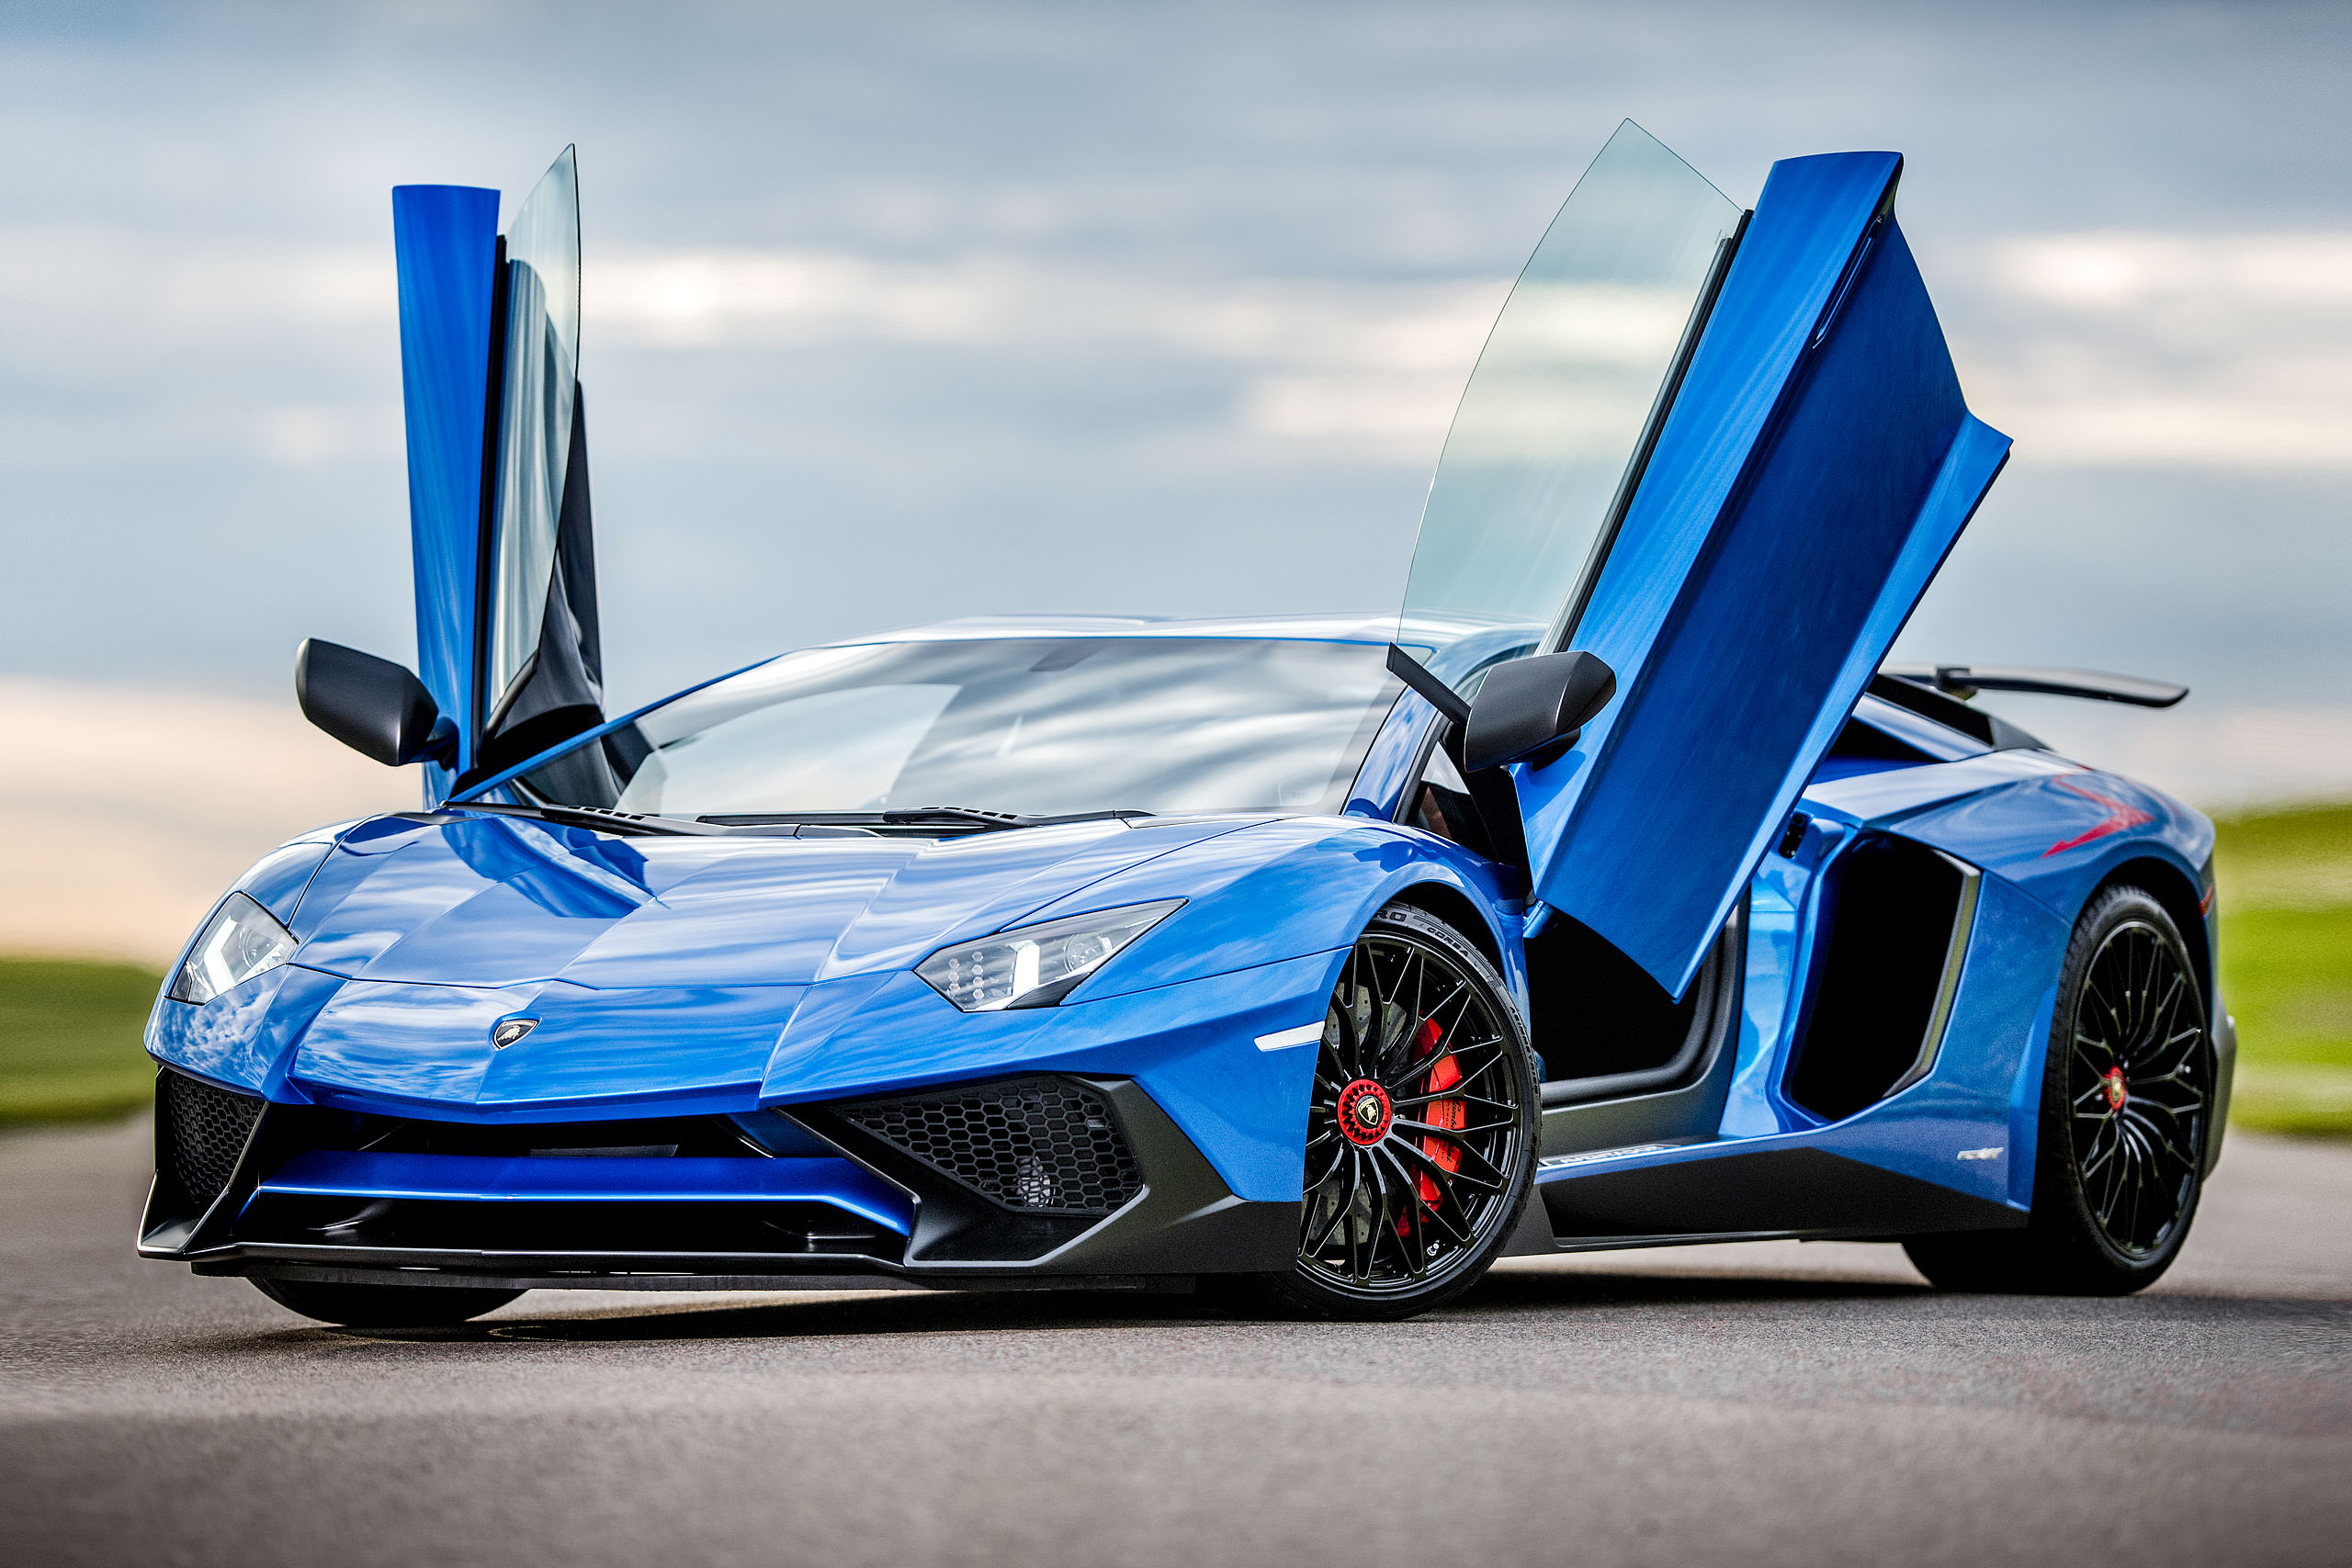 metallic blue Lamborghini aventador with the doors open parked on a road